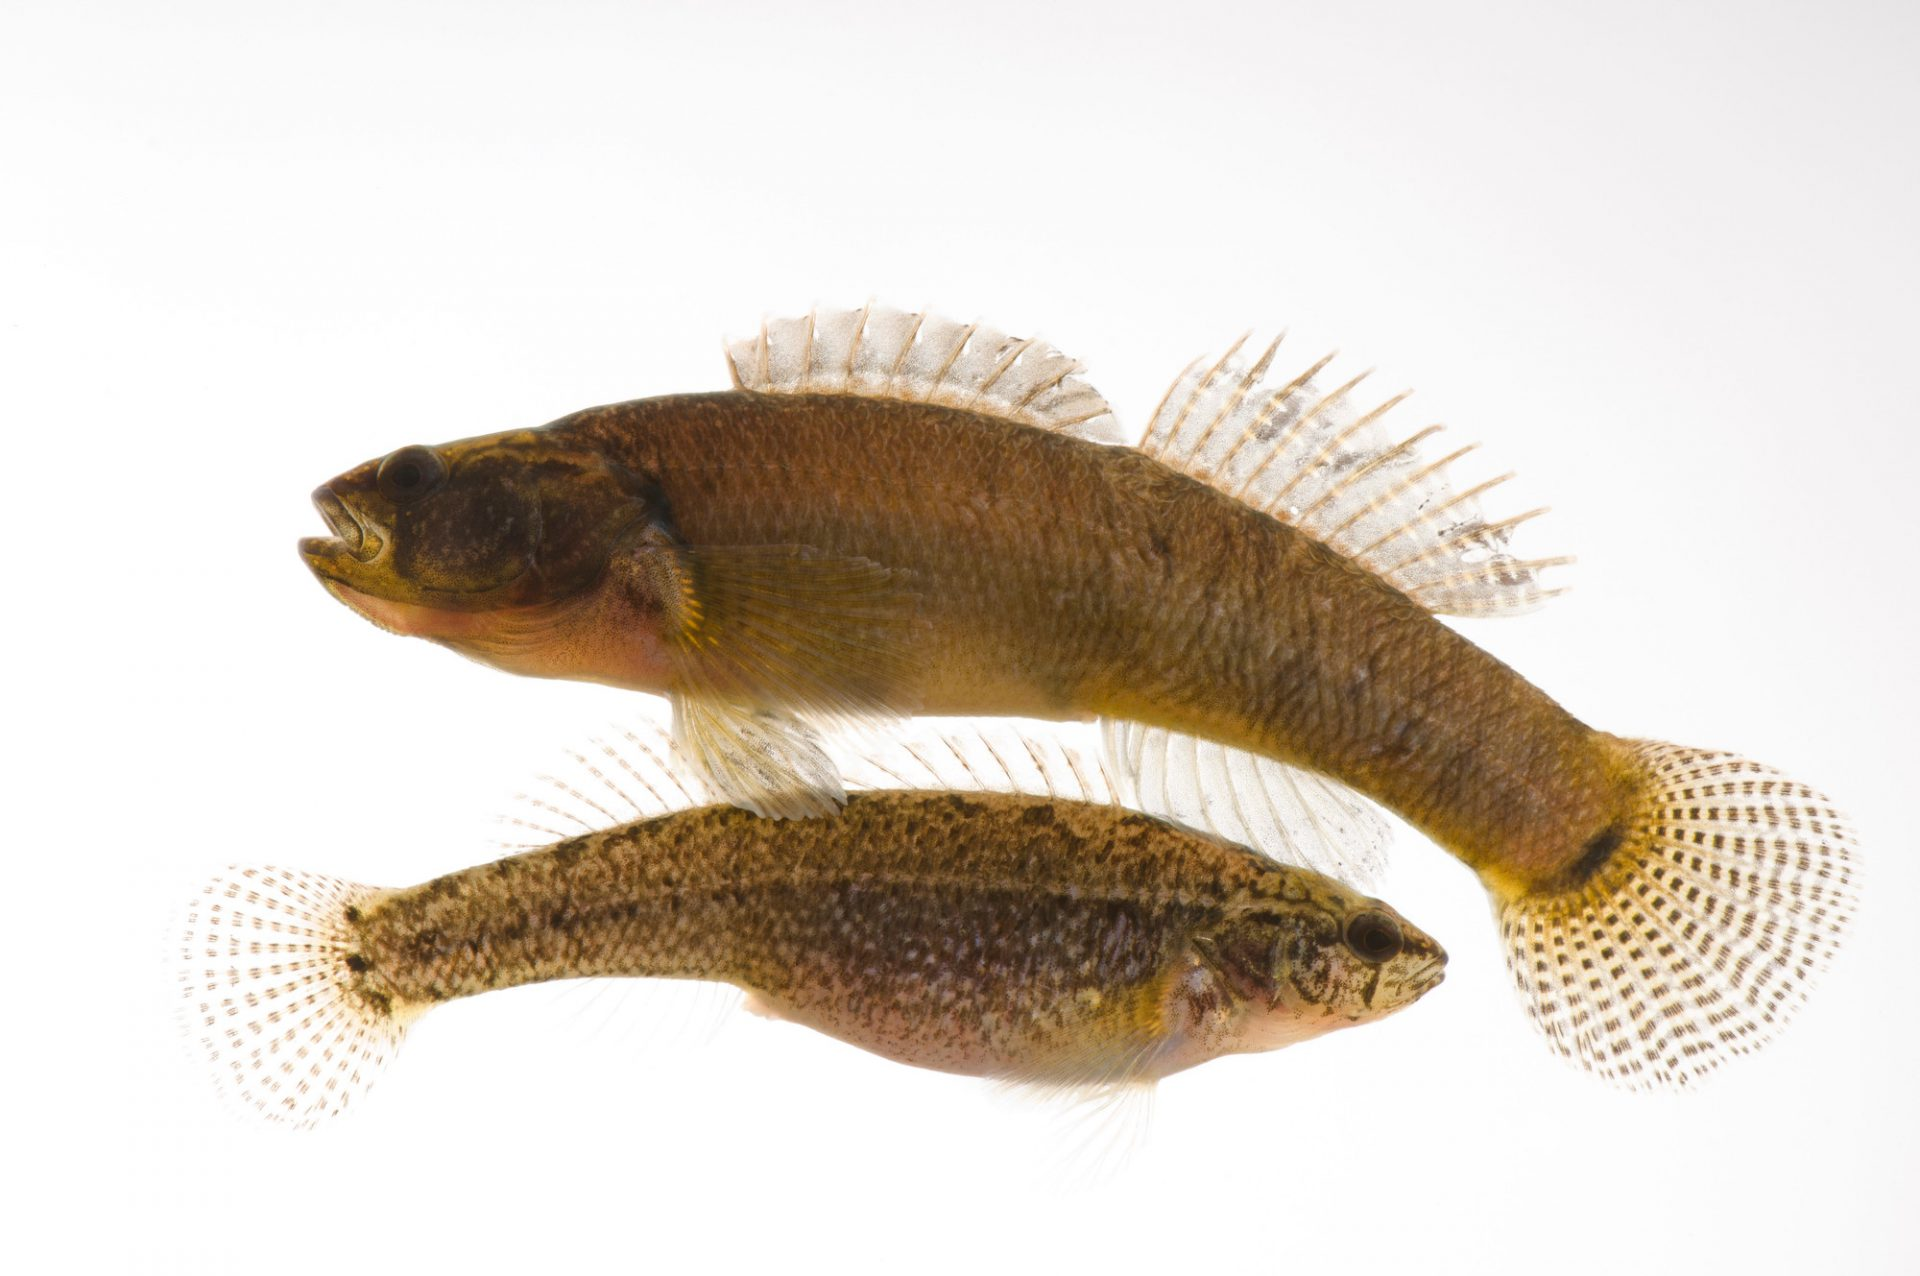 Relict darters (Etheostoma chienense) a federally threatened species at Conservation Fisheries, a native stream fish breeding center.